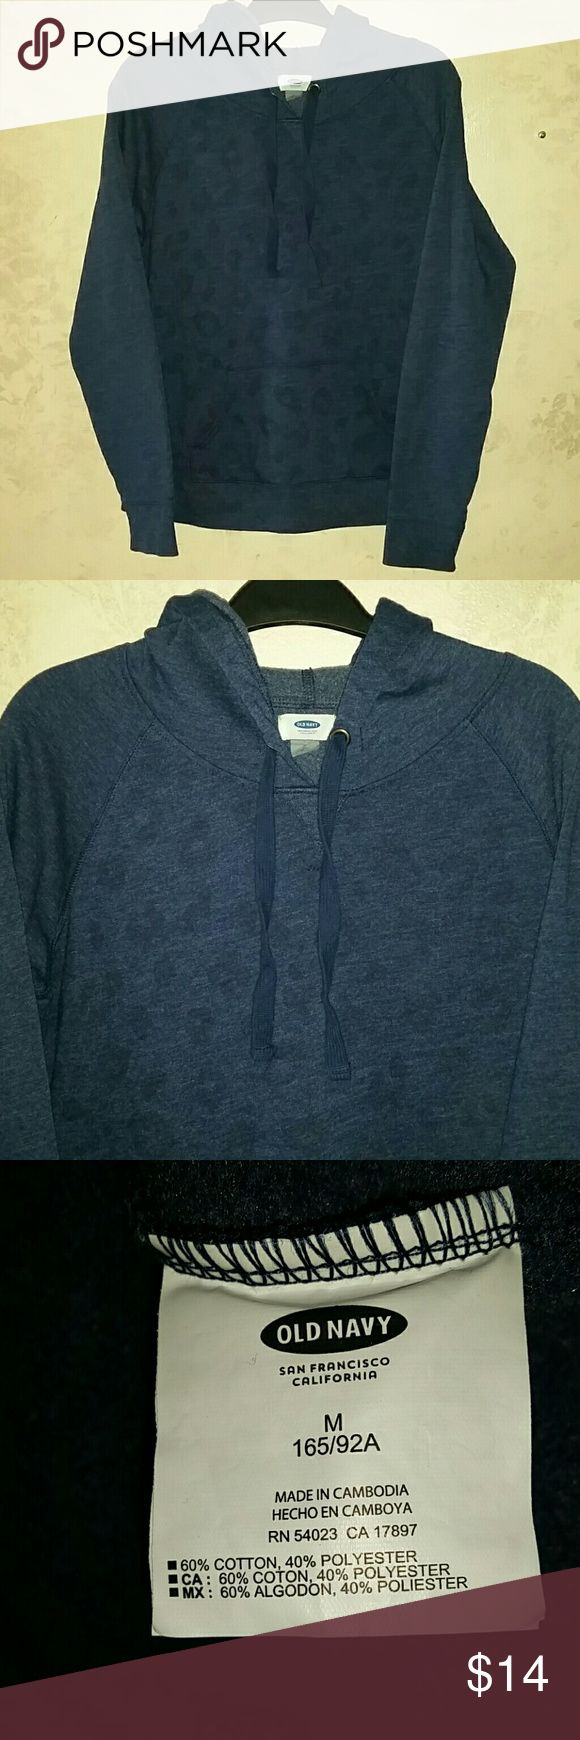 M nwt old navy blue animal print hoodie sweatshirt Old Navy blue hooded sweatshirt Cute Faint animal print on the front New with tags  Medium Old Navy Tops Sweatshirts & Hoodies